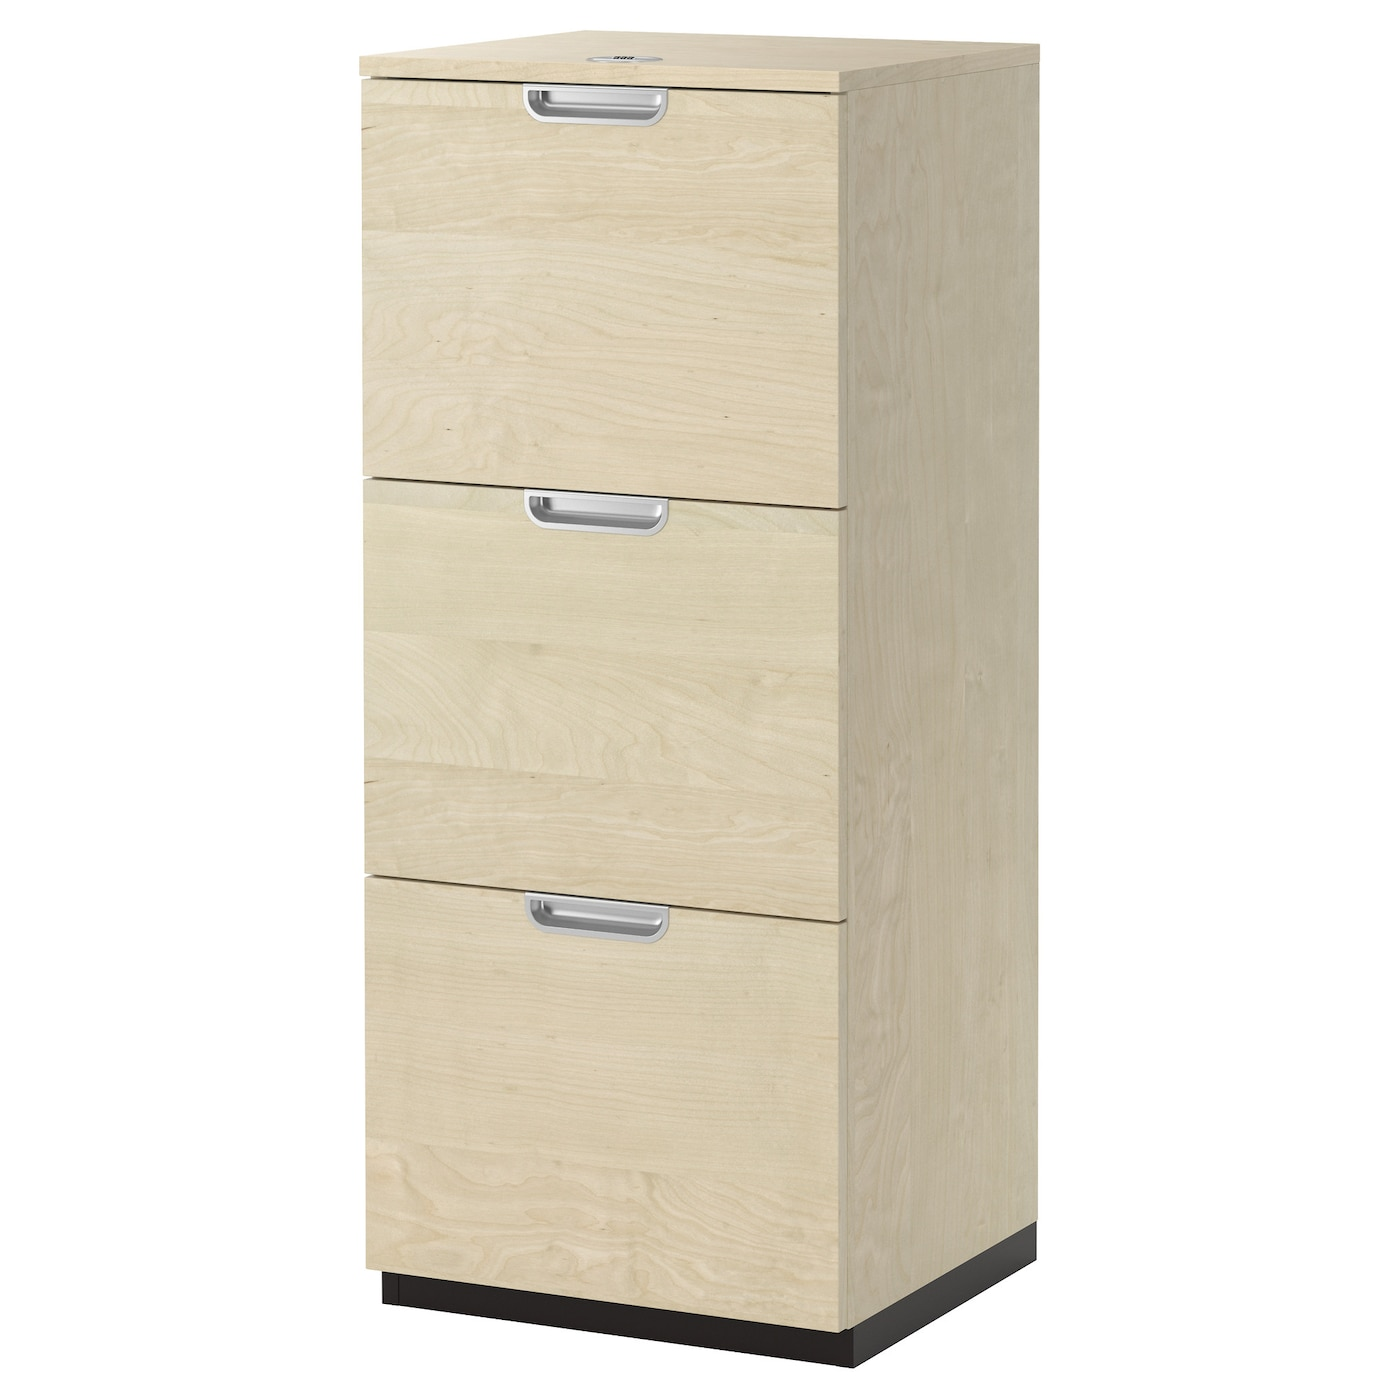 filing cabinets office cabinets ikea. Black Bedroom Furniture Sets. Home Design Ideas